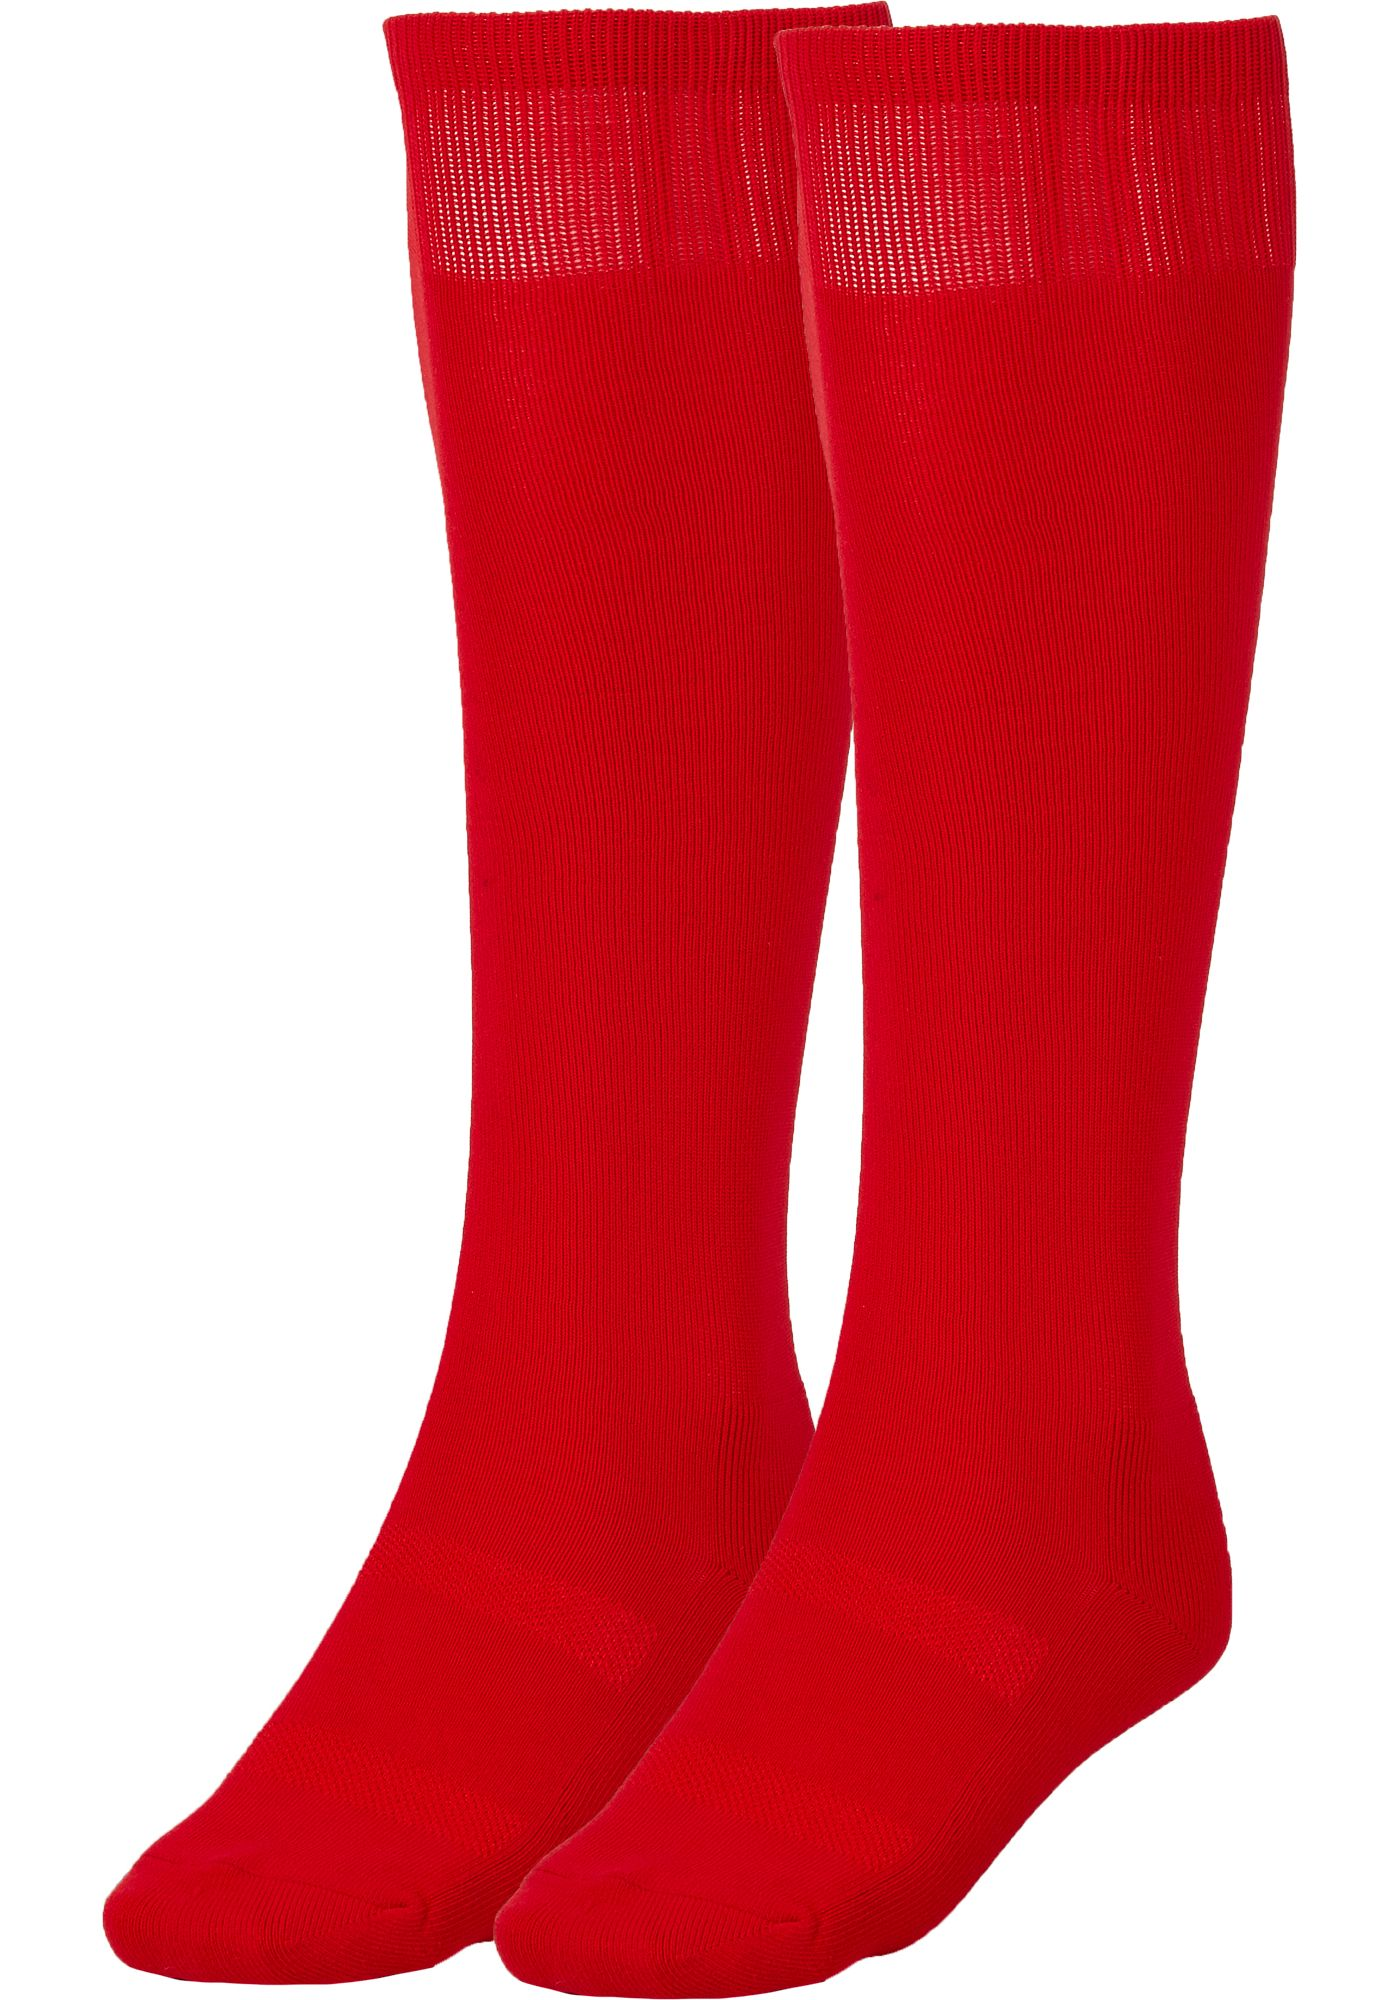 Louisville Slugger Baseball Knee High Socks 2 Pack